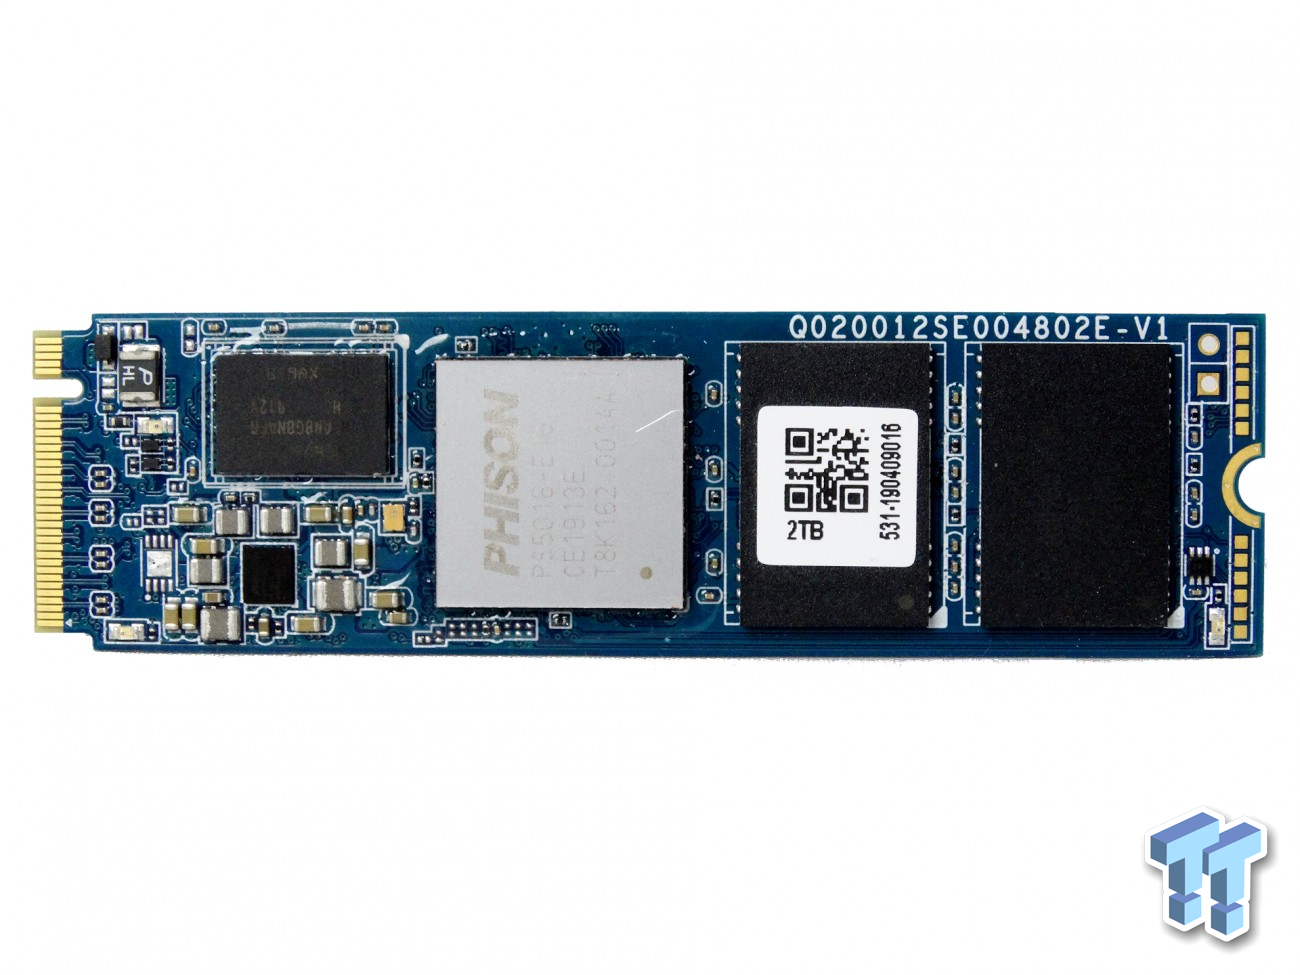 Phison Ps5016 E16 Pcie 4 0 Ssd First Look Preview Ssd New Bus Hyperx